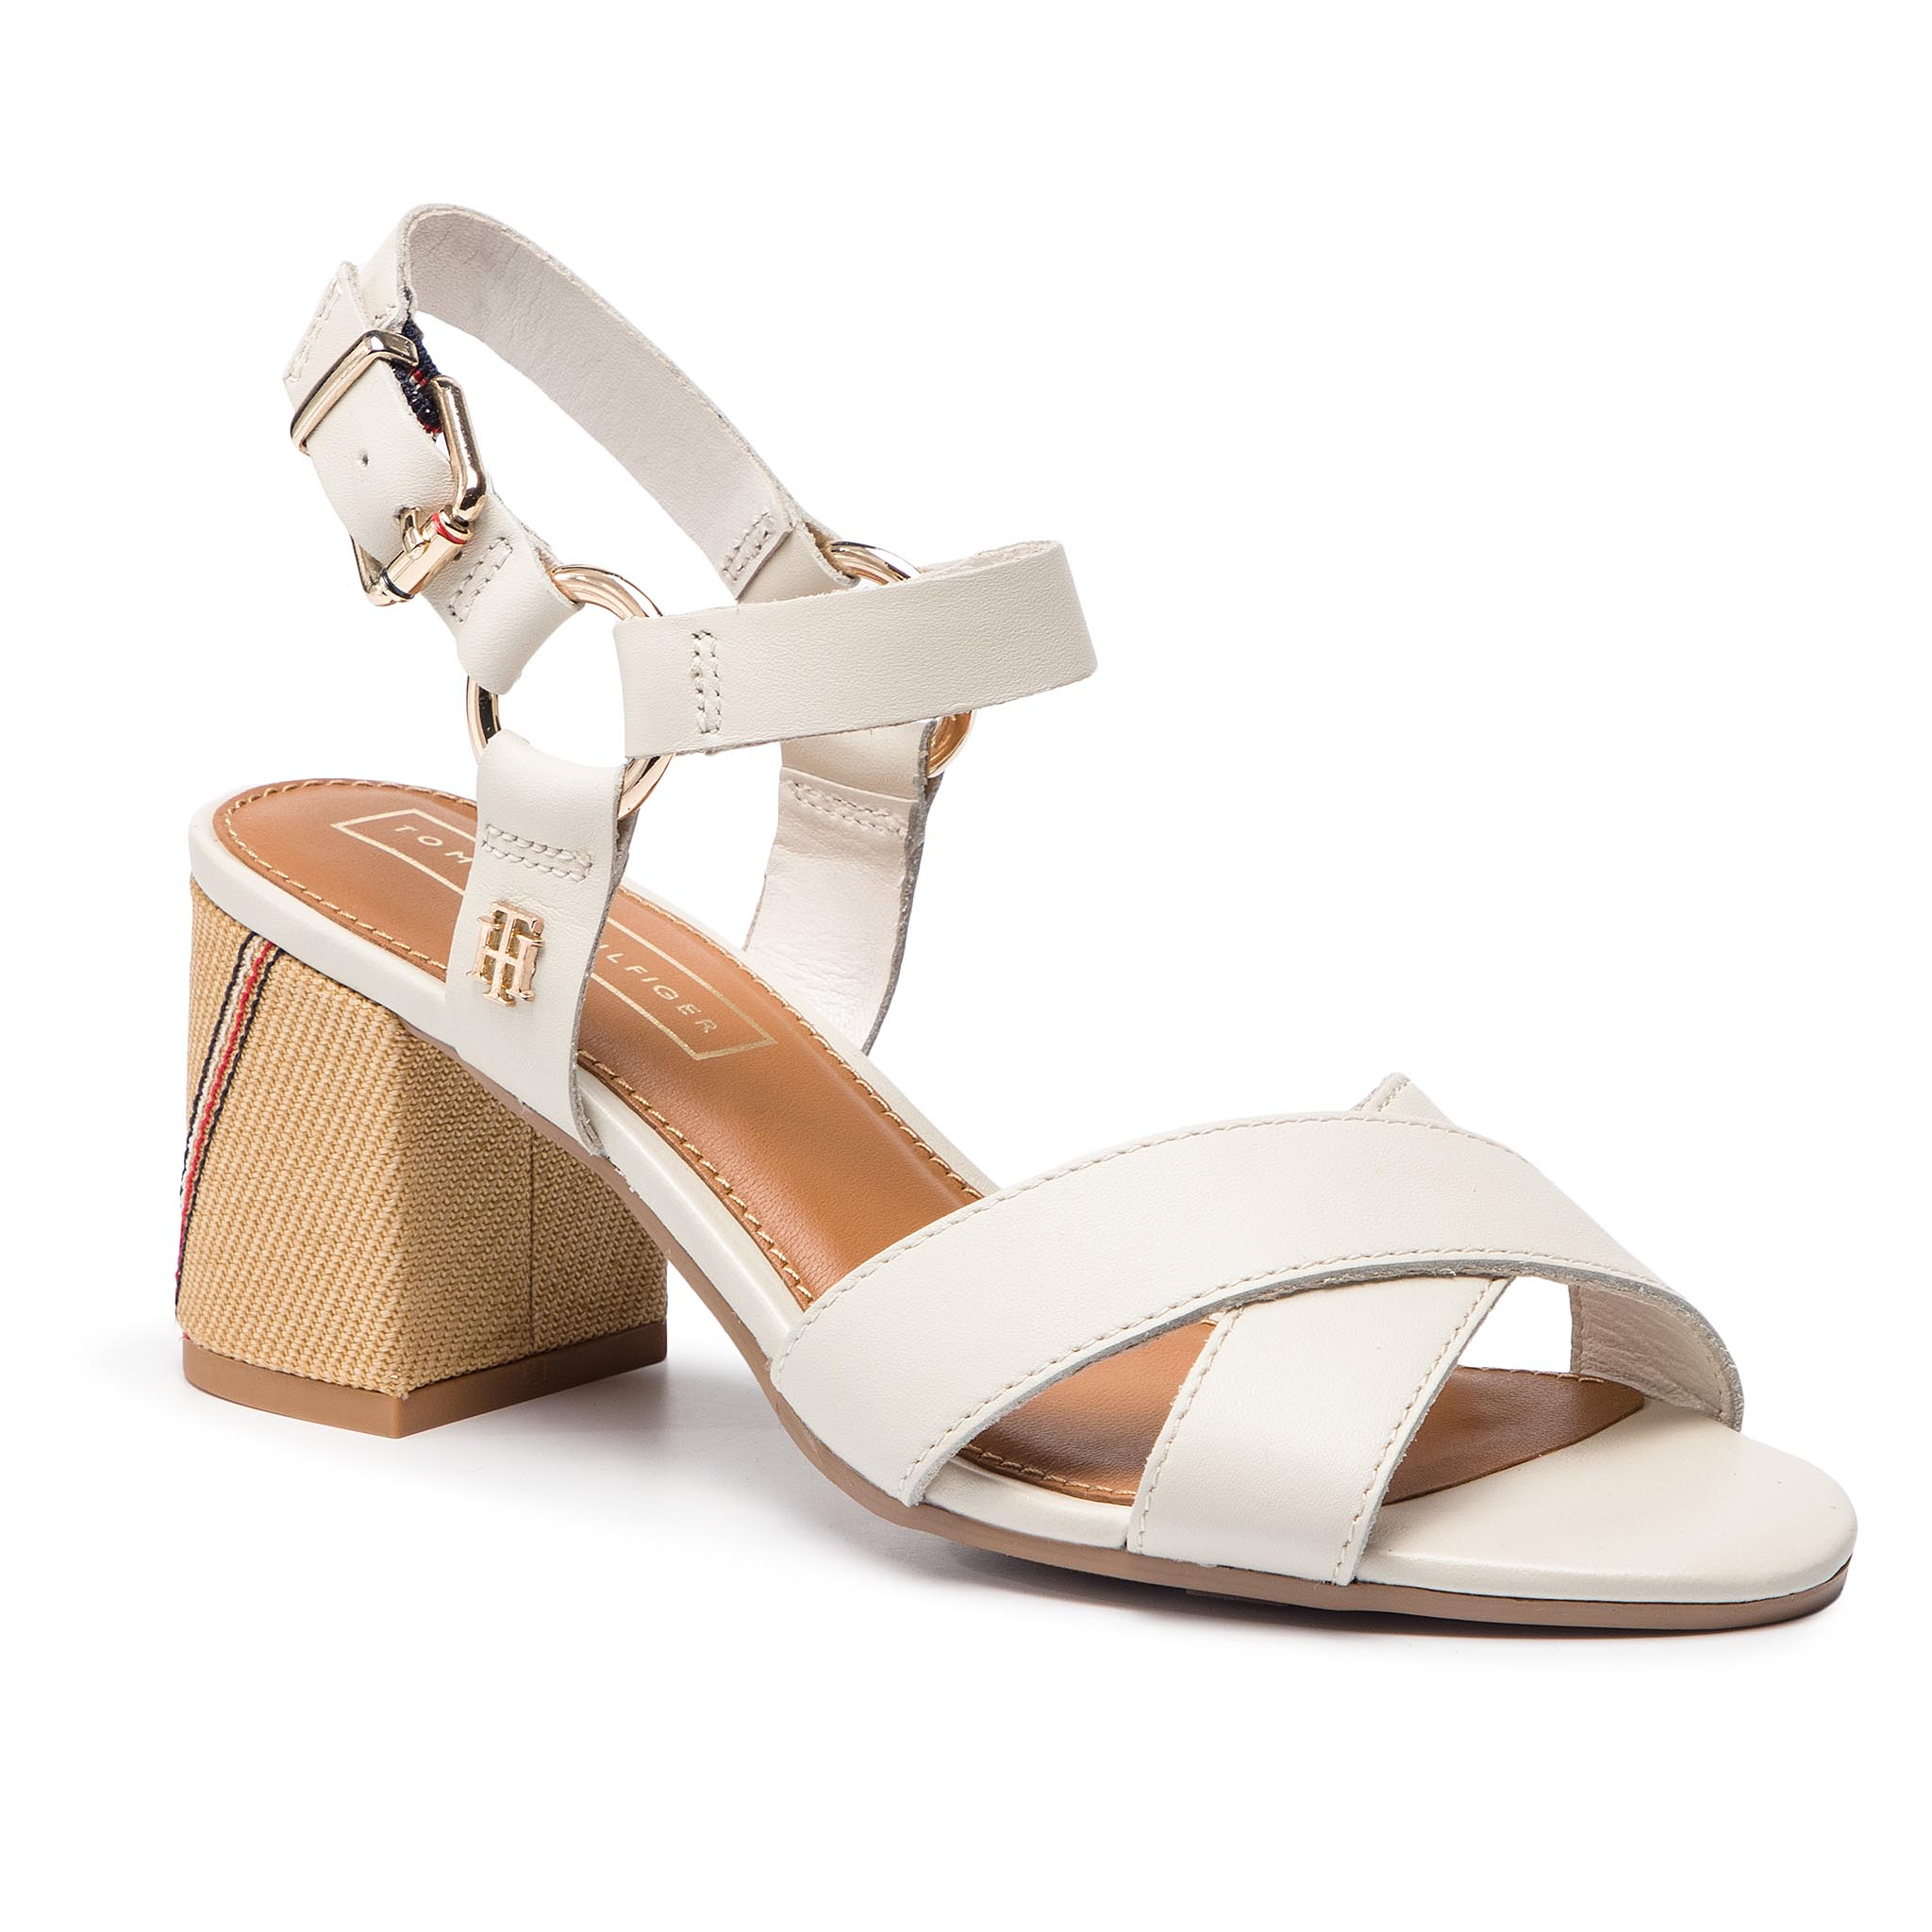 ccdc9c702f59 Sandals TOMMY HILFIGER Elevated Leather Heeled Sandal FW0FW04072 Whisper  White 121